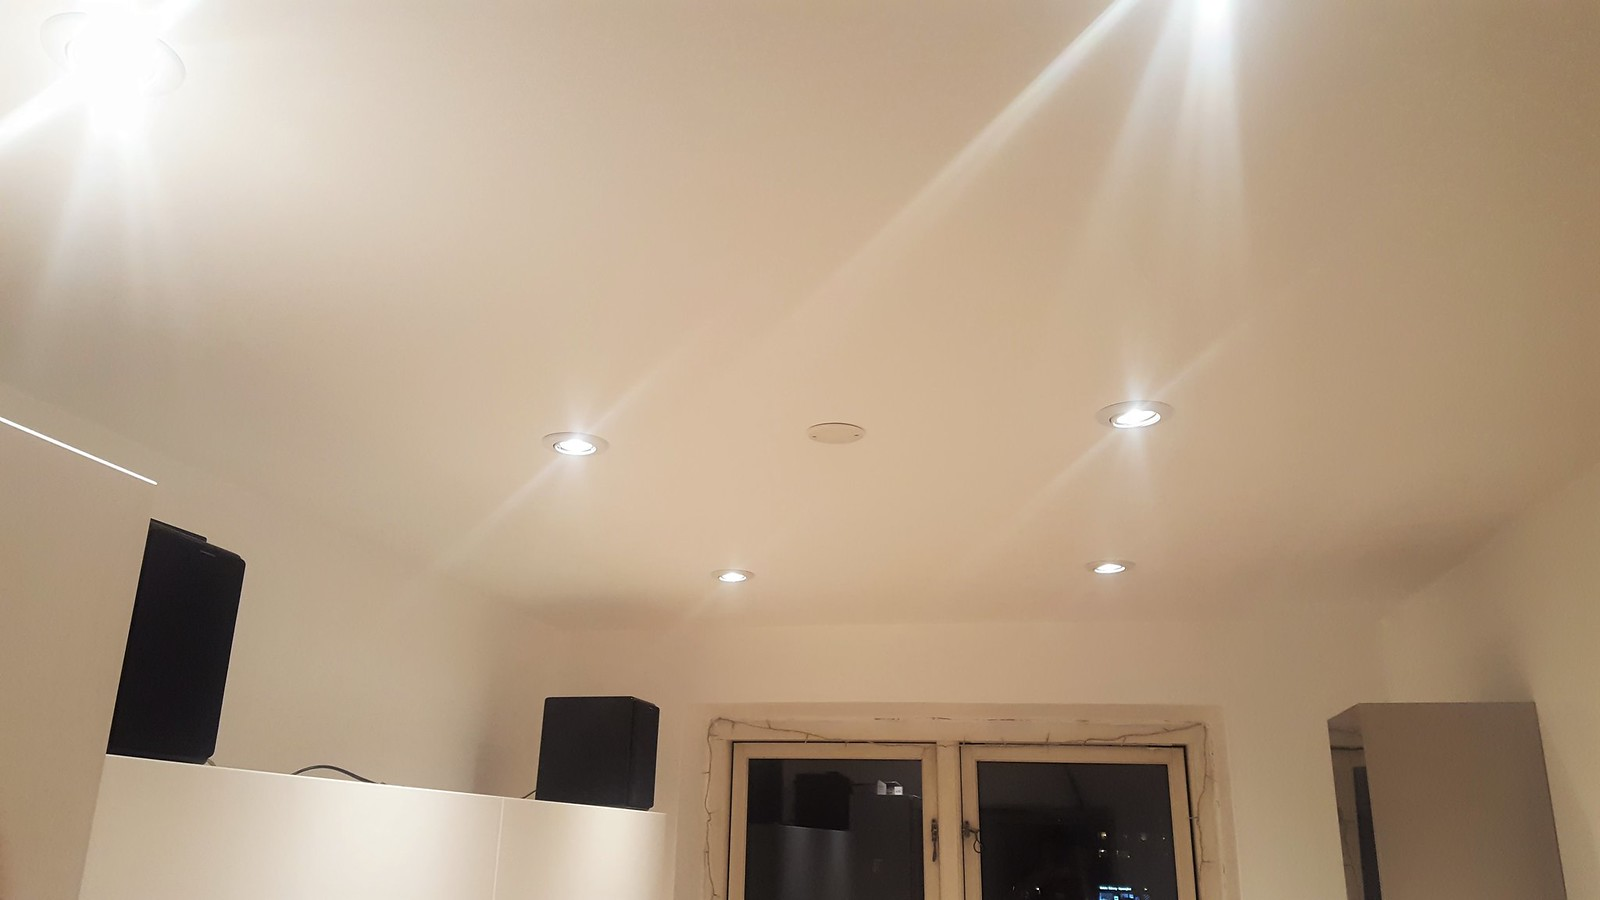 philips led downlight installation guide